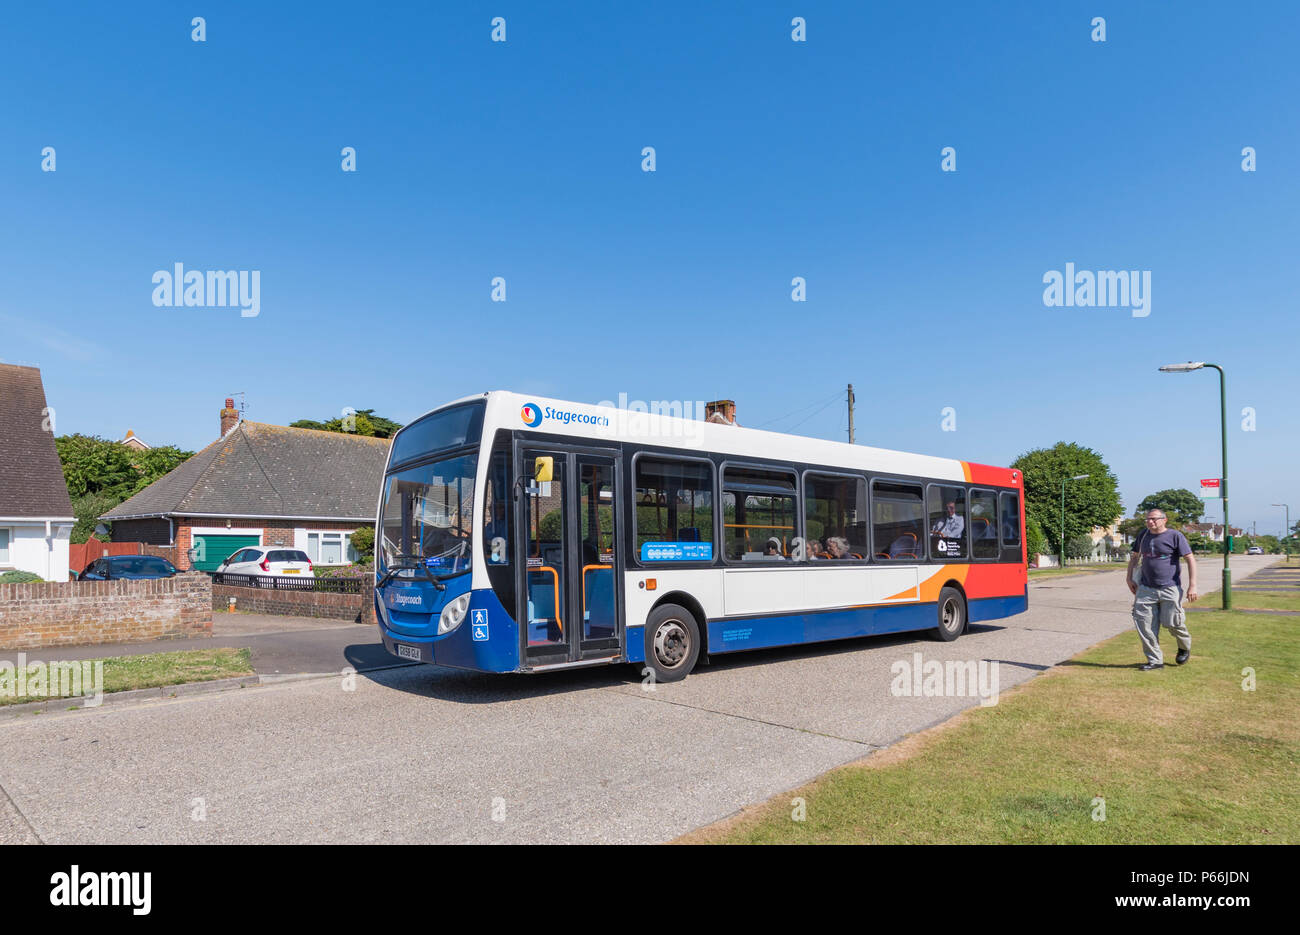 Number 9 Stagecoach single deck bus in a residential area in Rustington, West Sussex, England, UK. Stock Photo